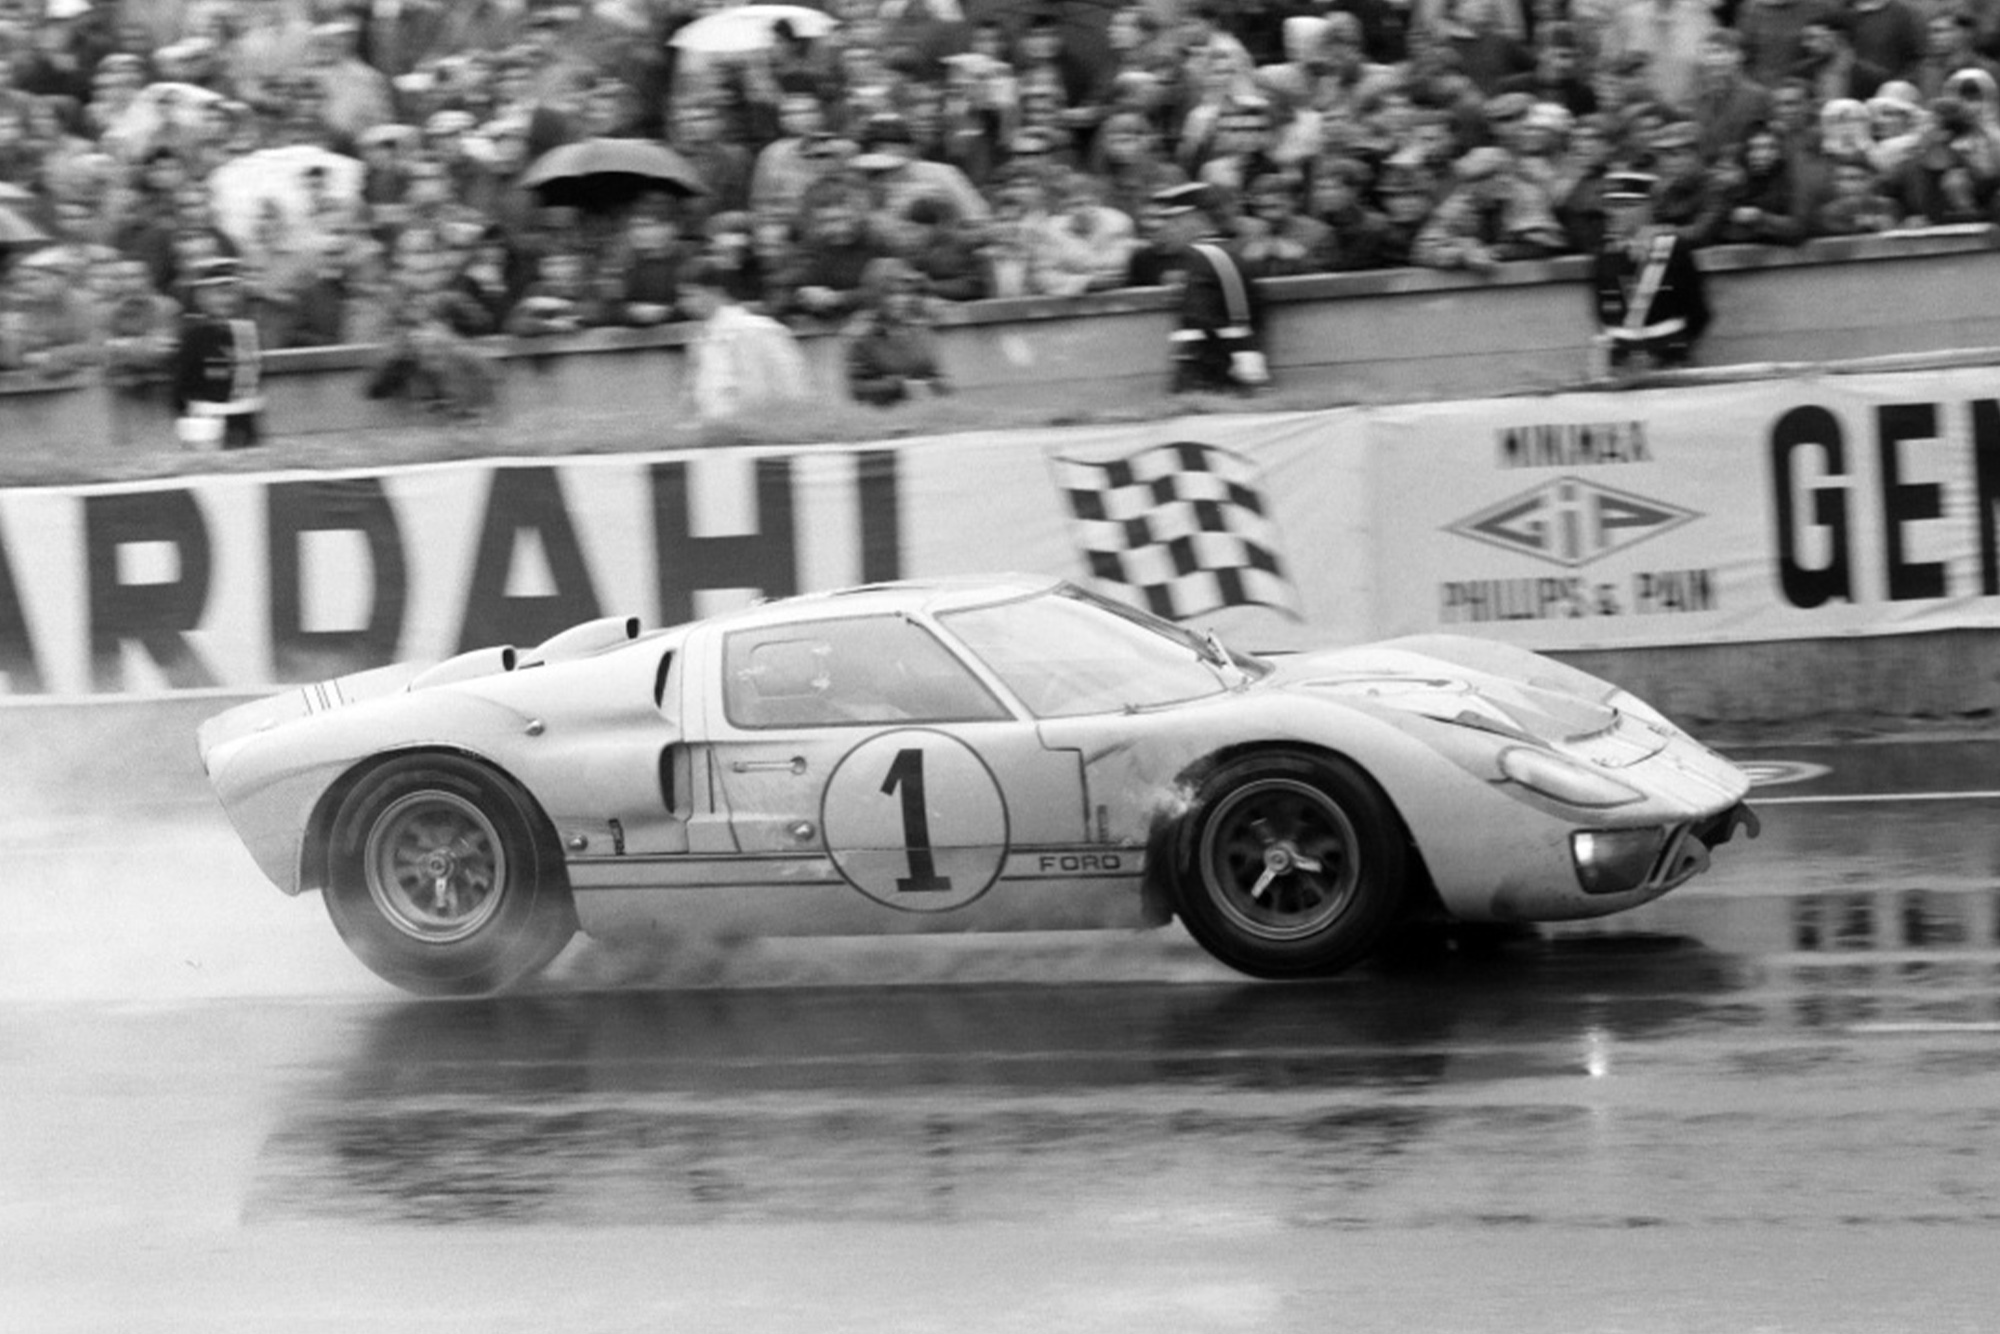 Ford Distances Itself From Le Mans 66 Film Motor Sport Magazine